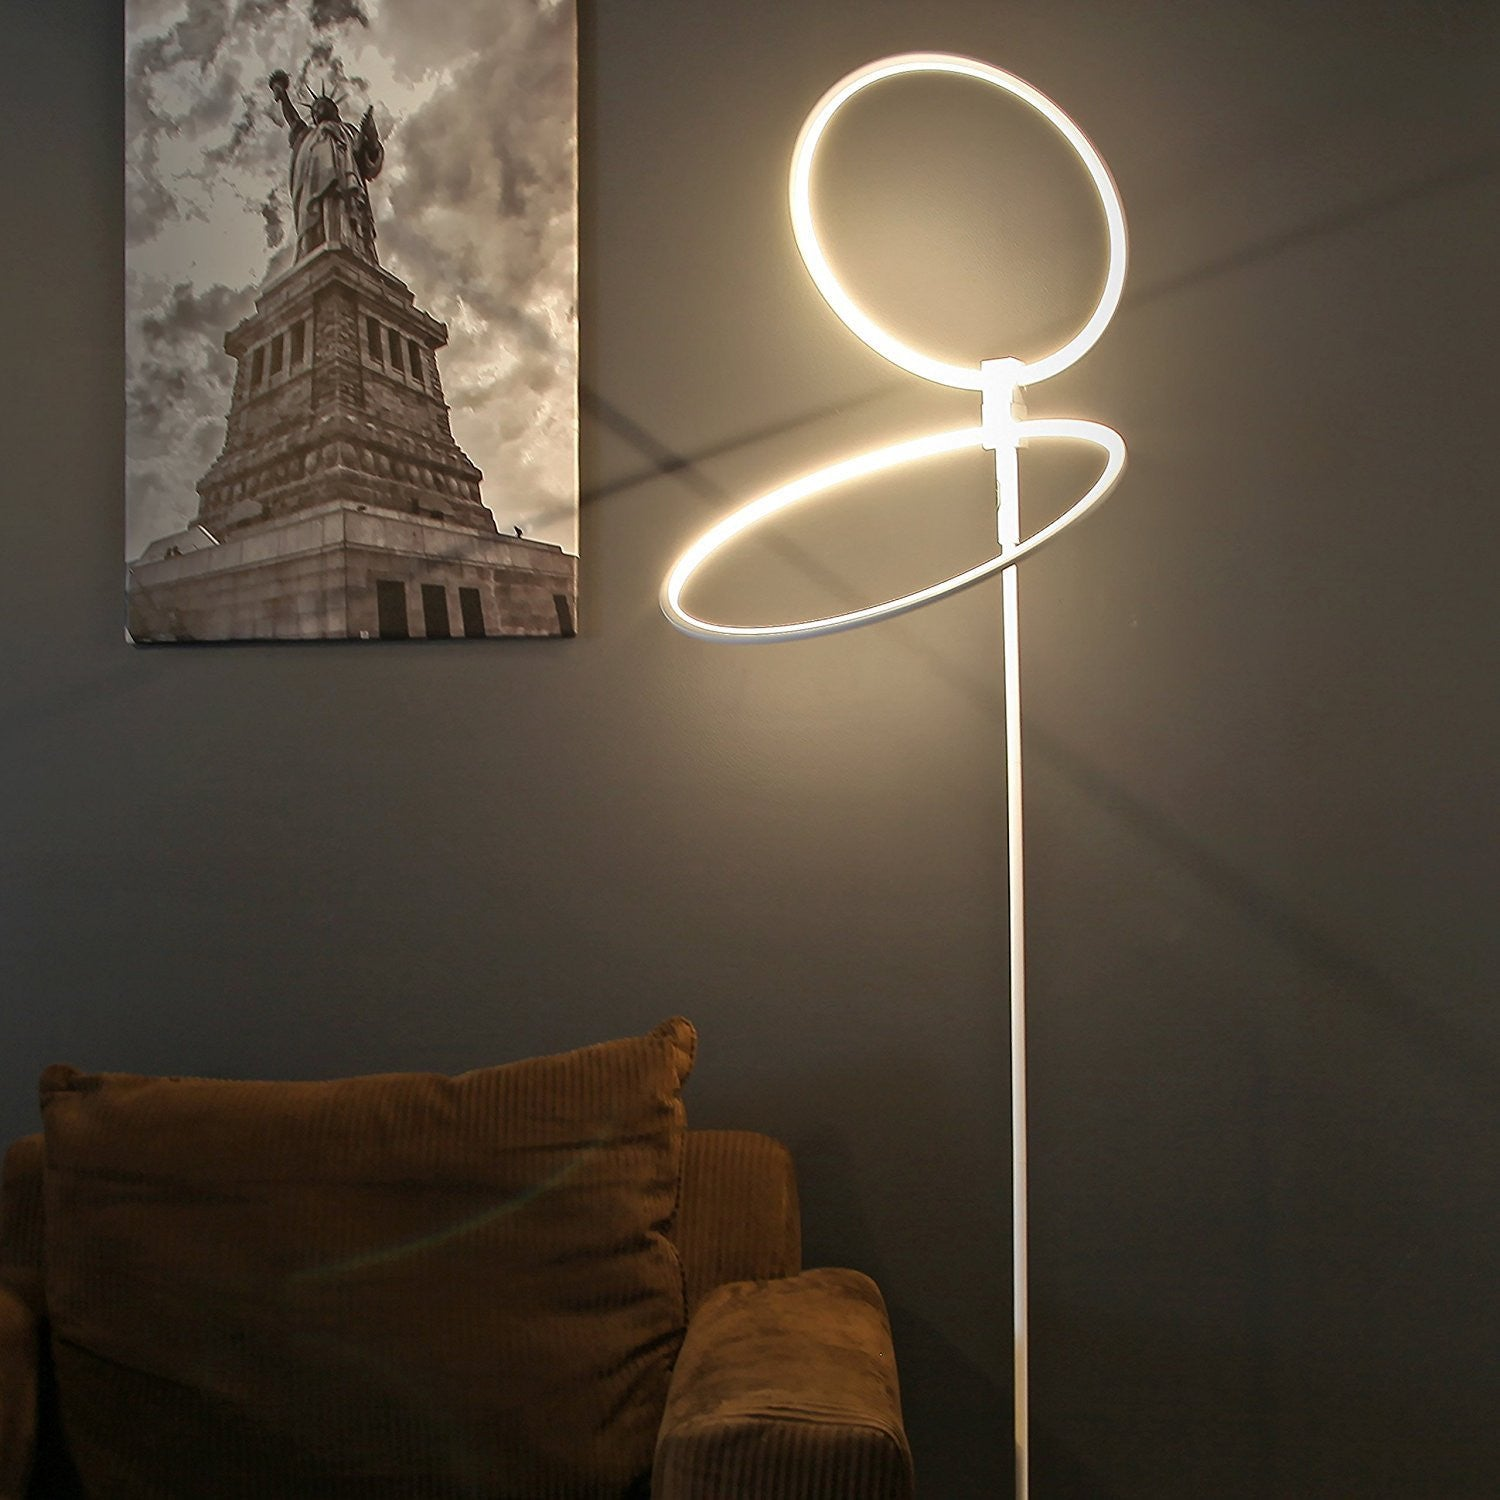 brightech store eclipse led floor lamp u2013 rings of light bring scifi ambiance to spaces u2013 28 watts u2013 dimmable bright light u2013 silver finish - Led Floor Lamp